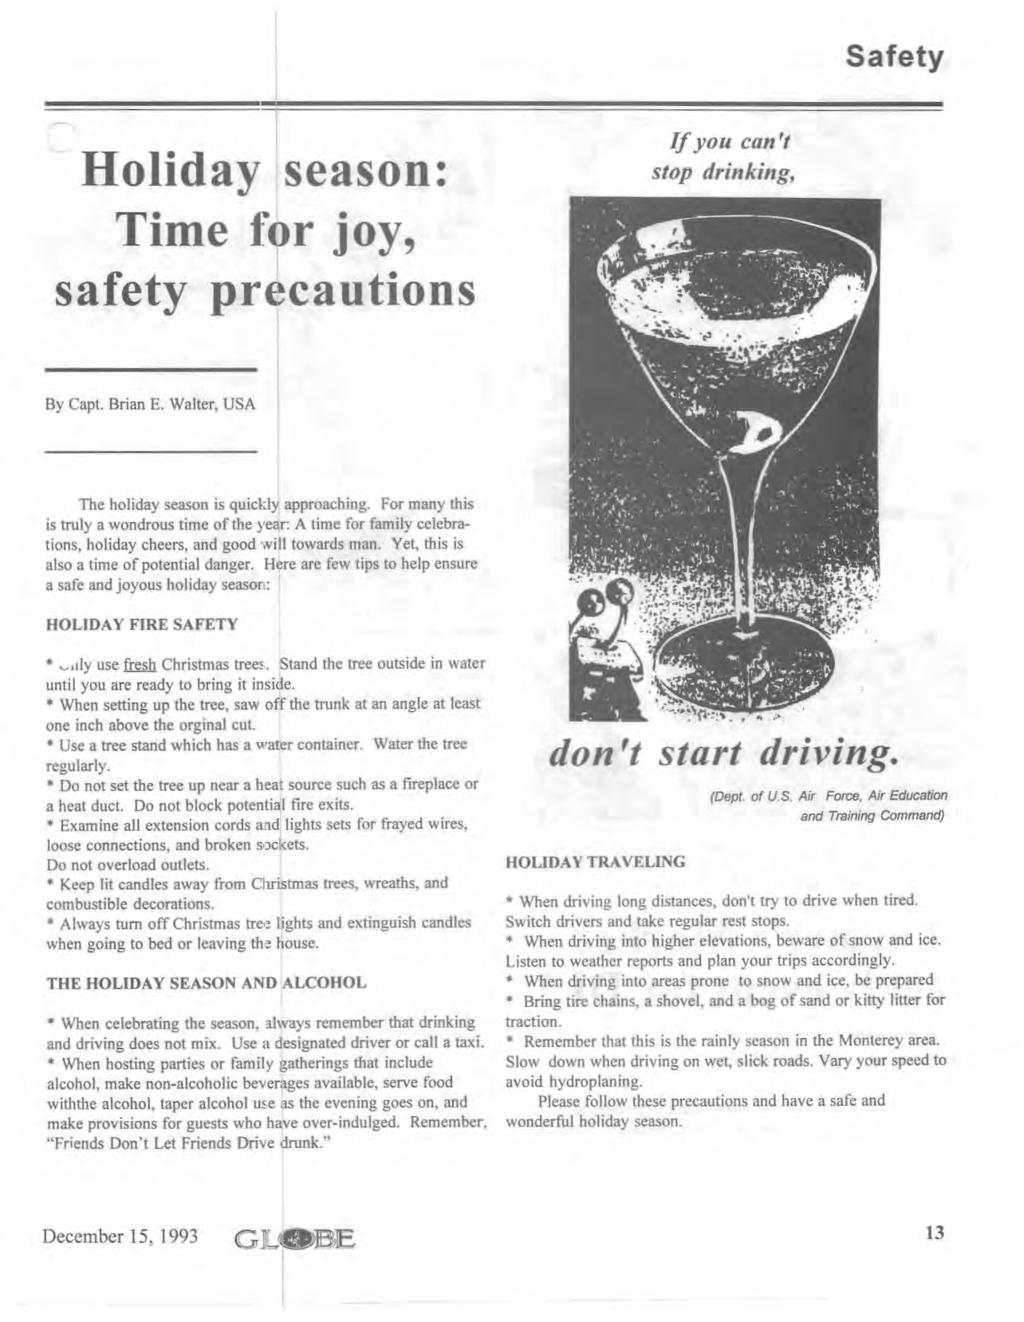 Safety Holiday season: Time for joy, safety precautions [[you can't stop drinking, By Capt. Brian E. Walter, USA The holiday season is quickly approaching.